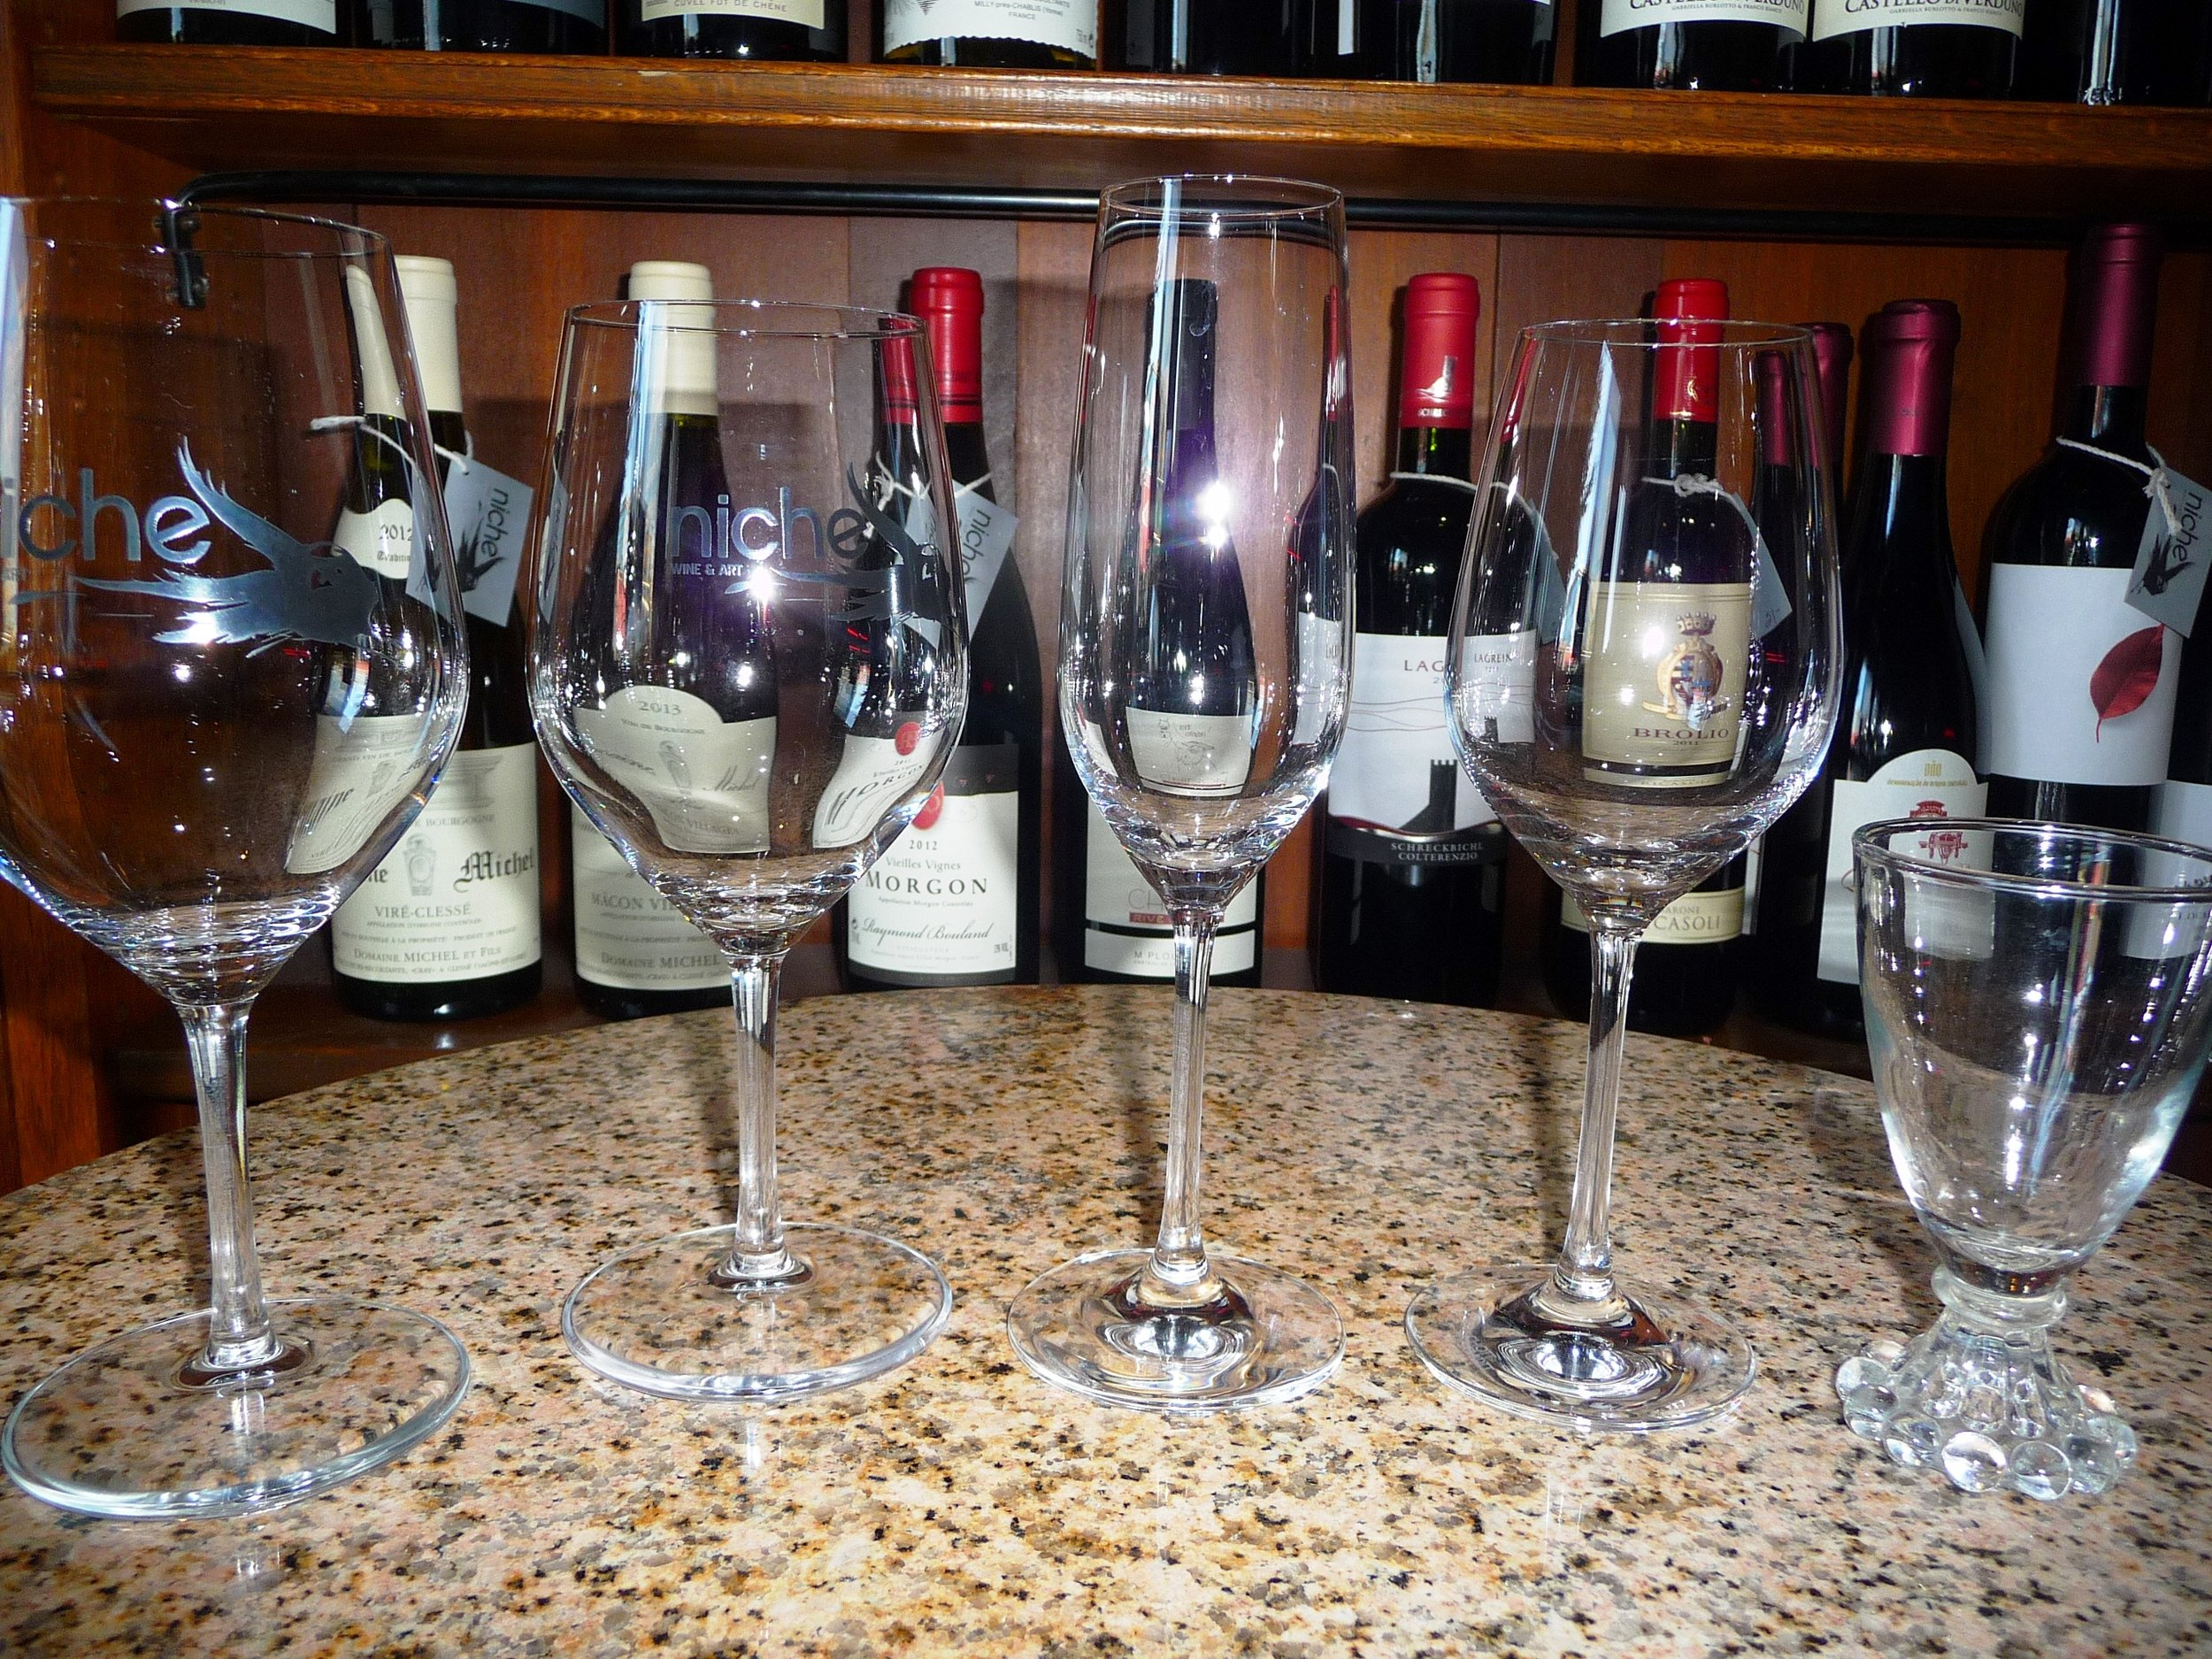 From left to right: 16 ounce red wine glass, 14 ounce white wine glass, Champagne flute, spirits wine glass with tulip shape to release aromas of Scotch for example, fun fortified wine glass for things like Port and Sherry.